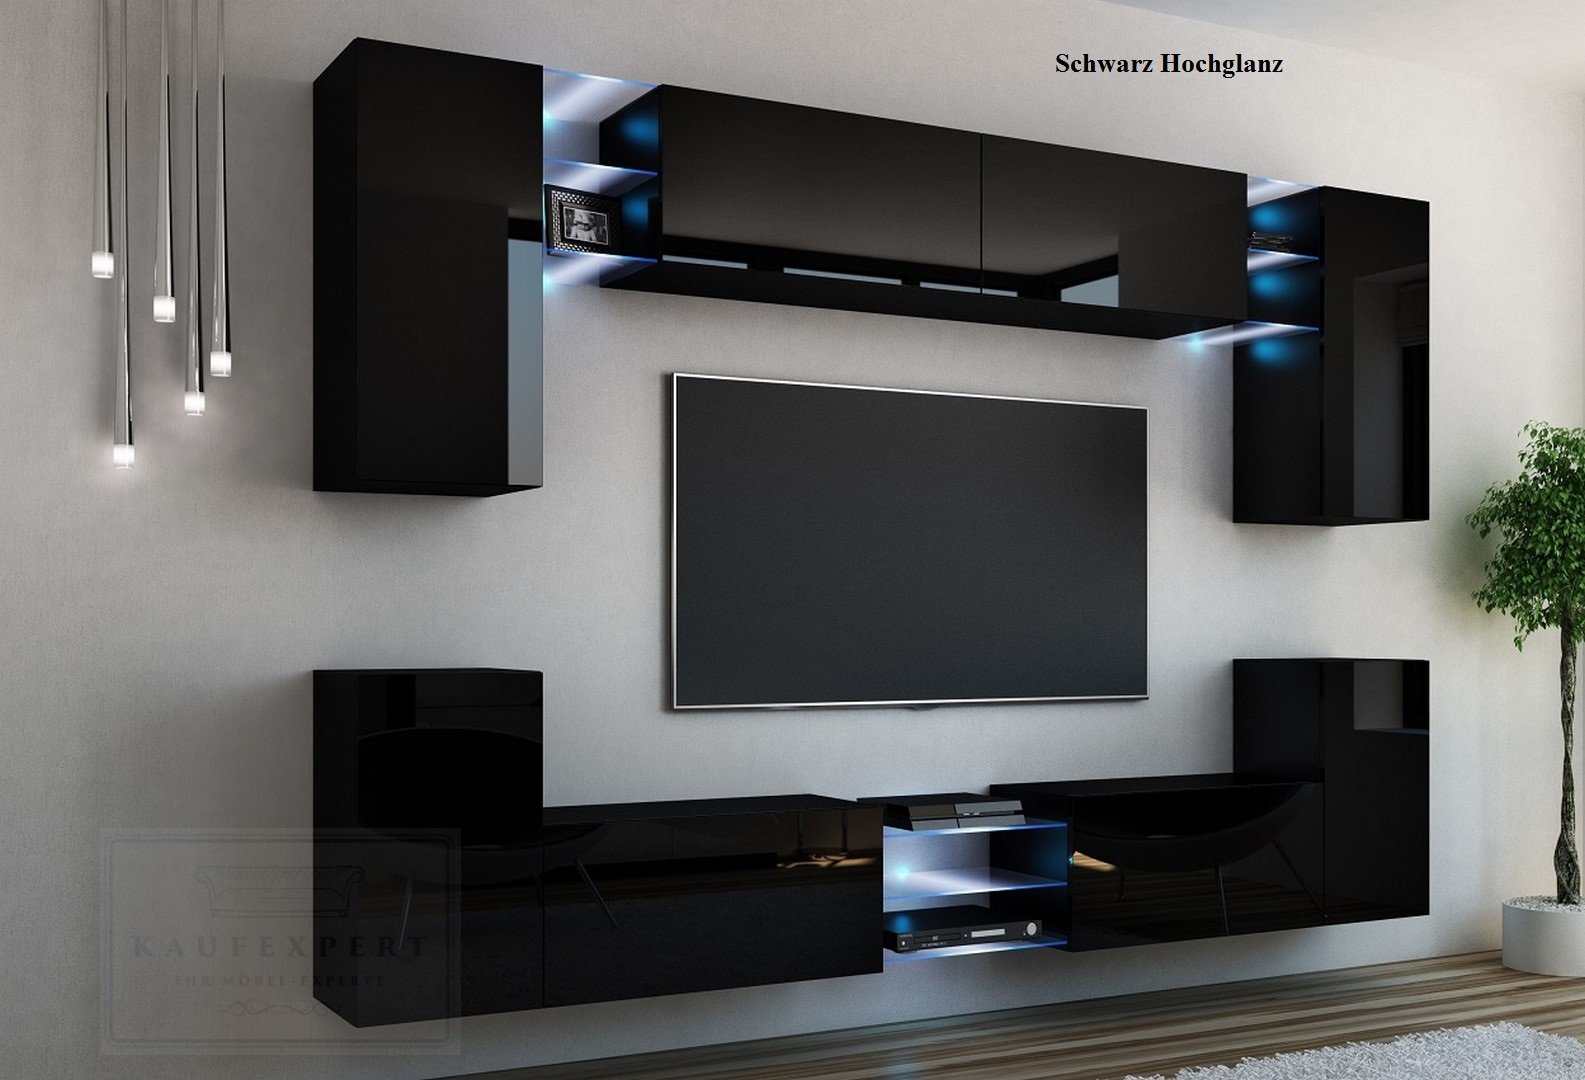 wohnwand galaxy wei schwarz hochglanz anbauwand wohnwand led beleuchtung modern ebay. Black Bedroom Furniture Sets. Home Design Ideas